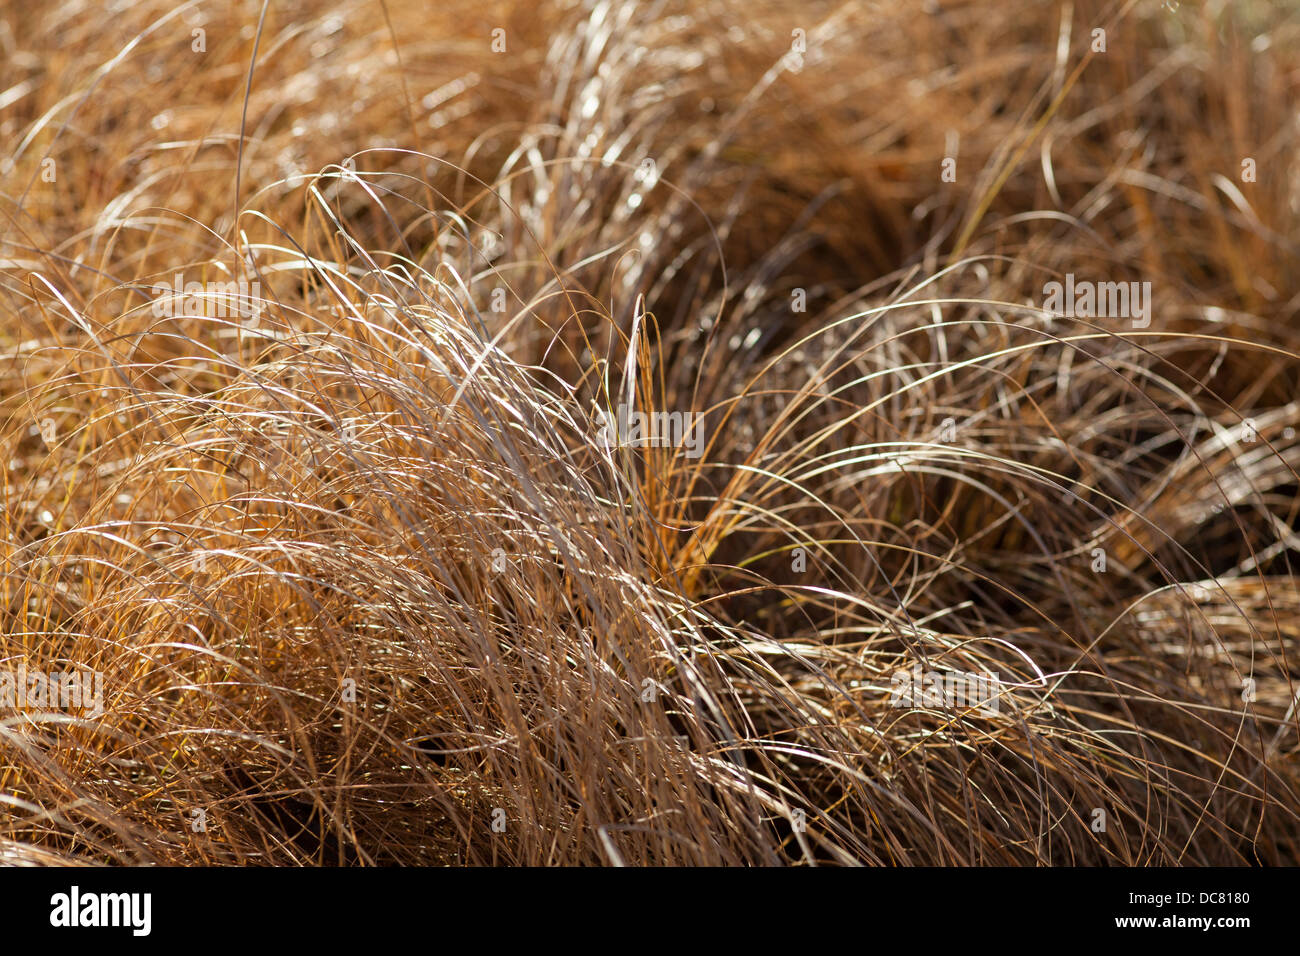 Carex 'Frosted Curls' - Stock Image